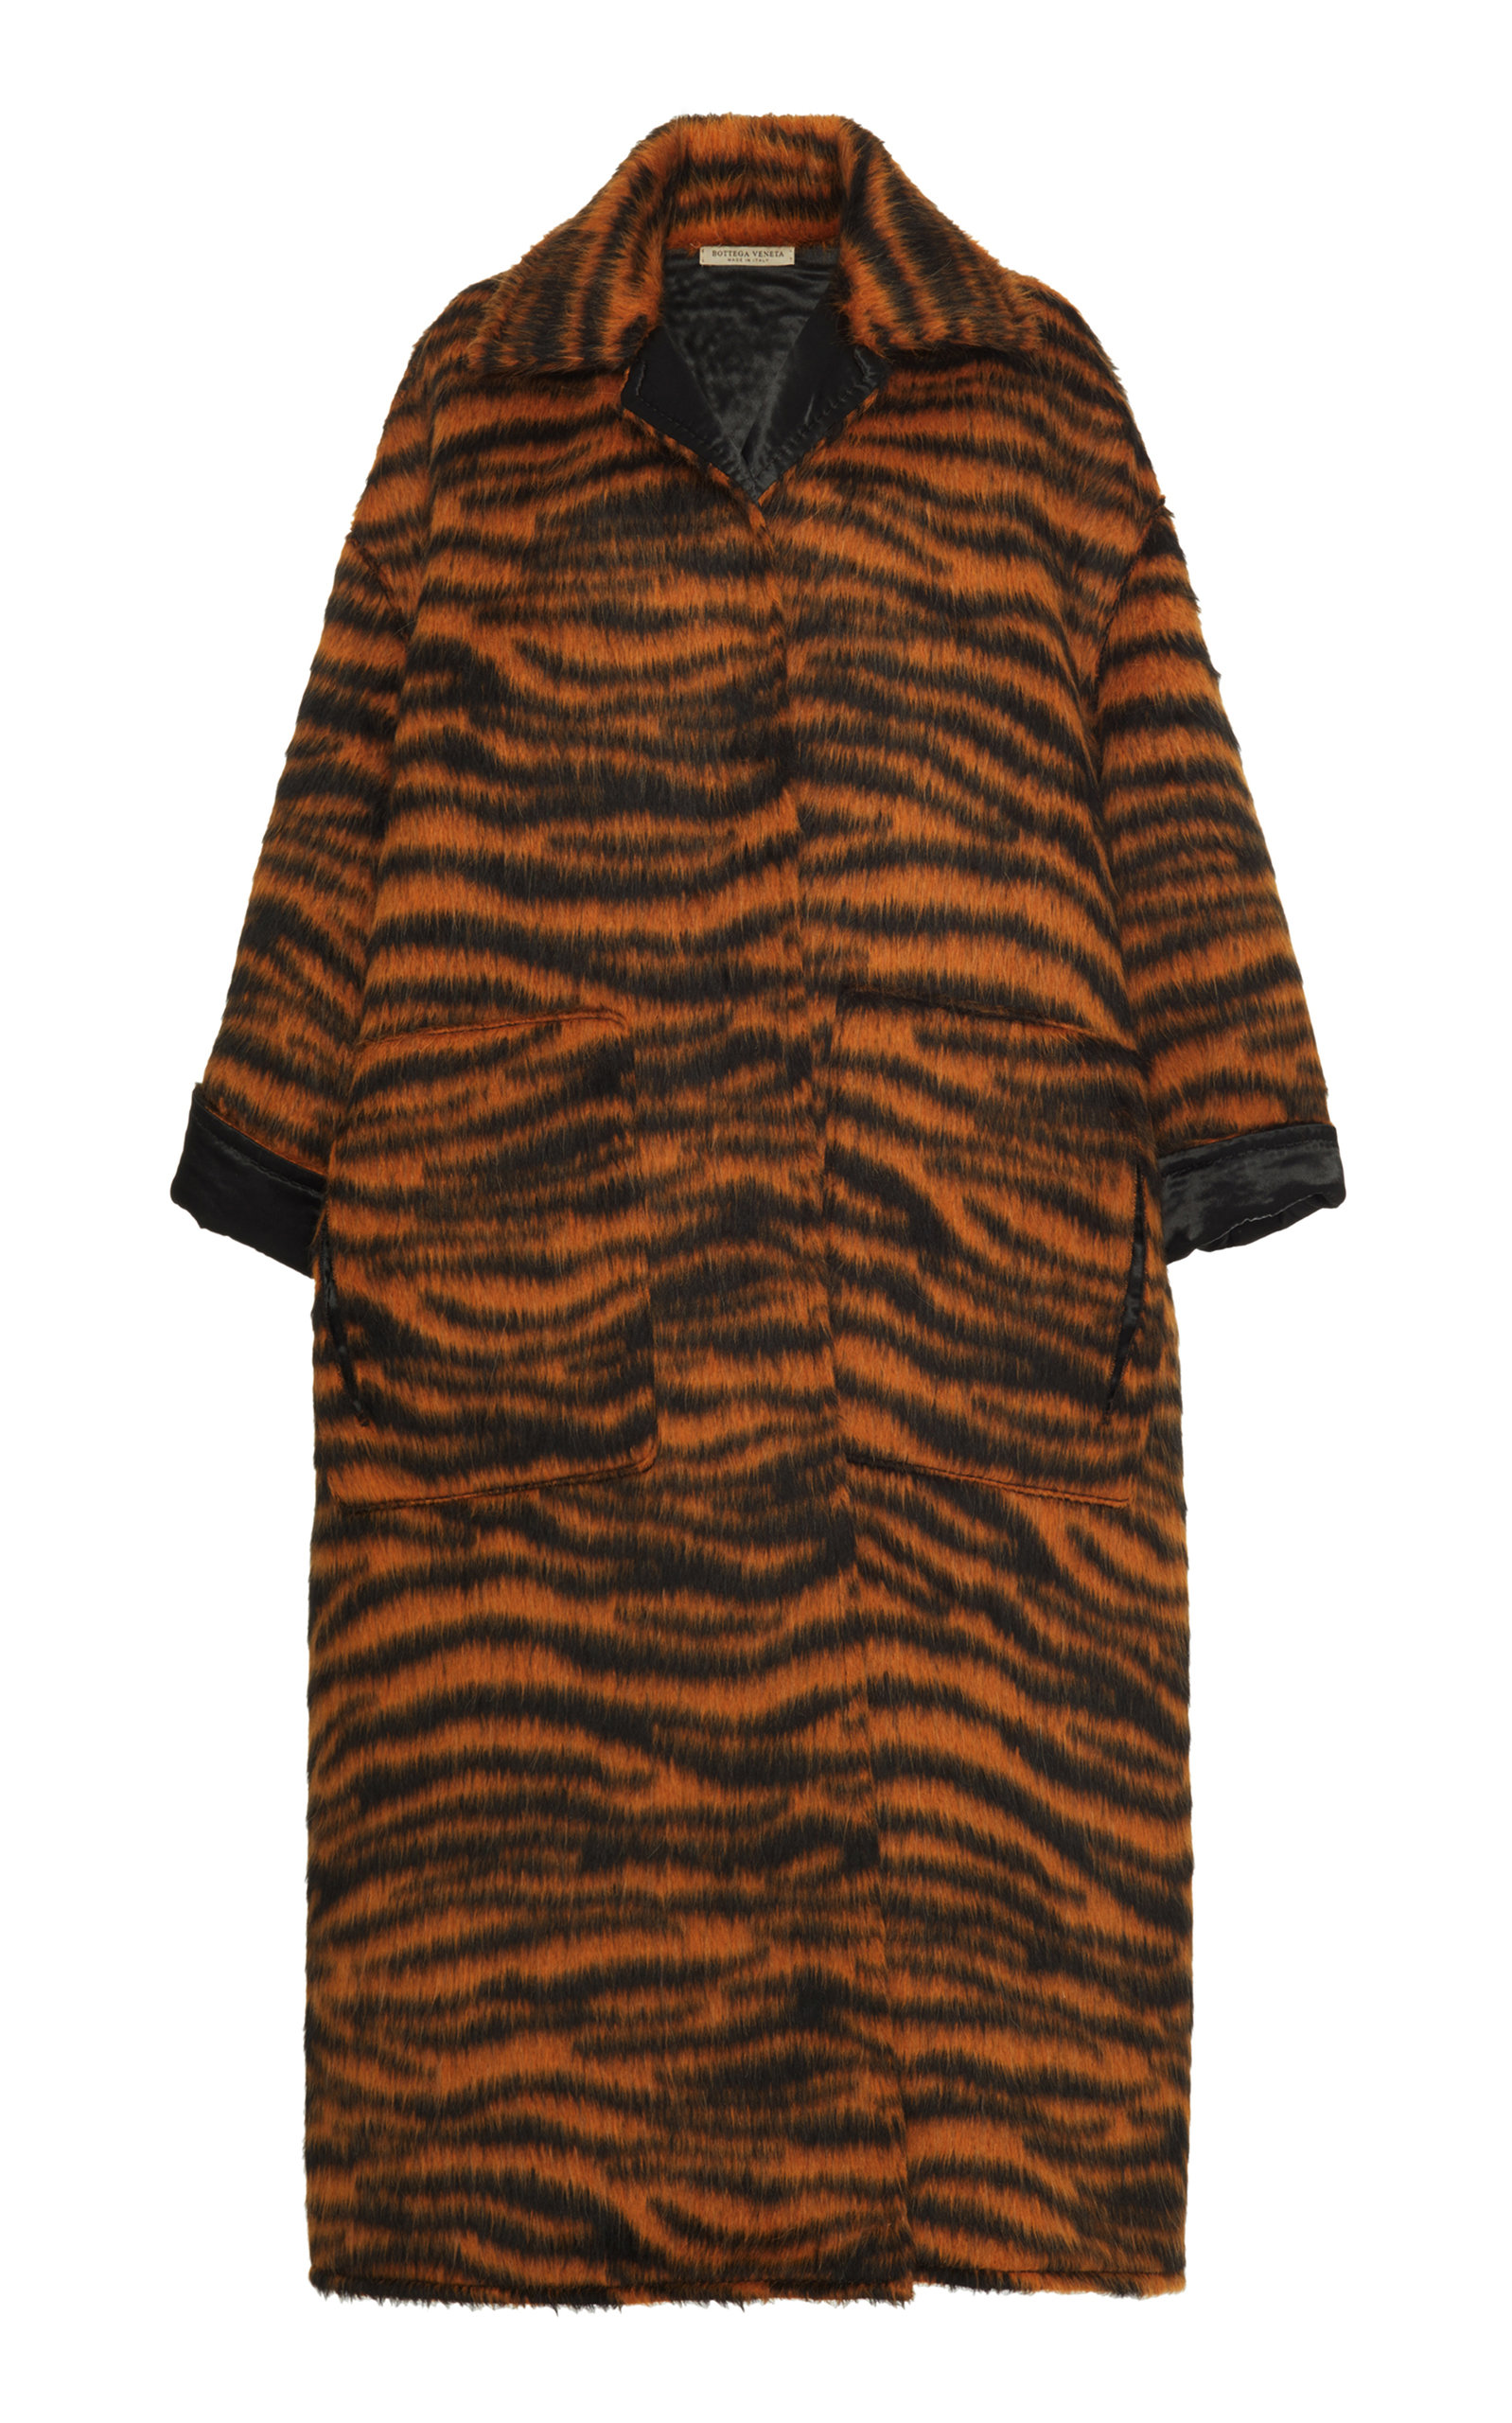 Oversized Tiger-Print Llama-Blend Coat, Animal